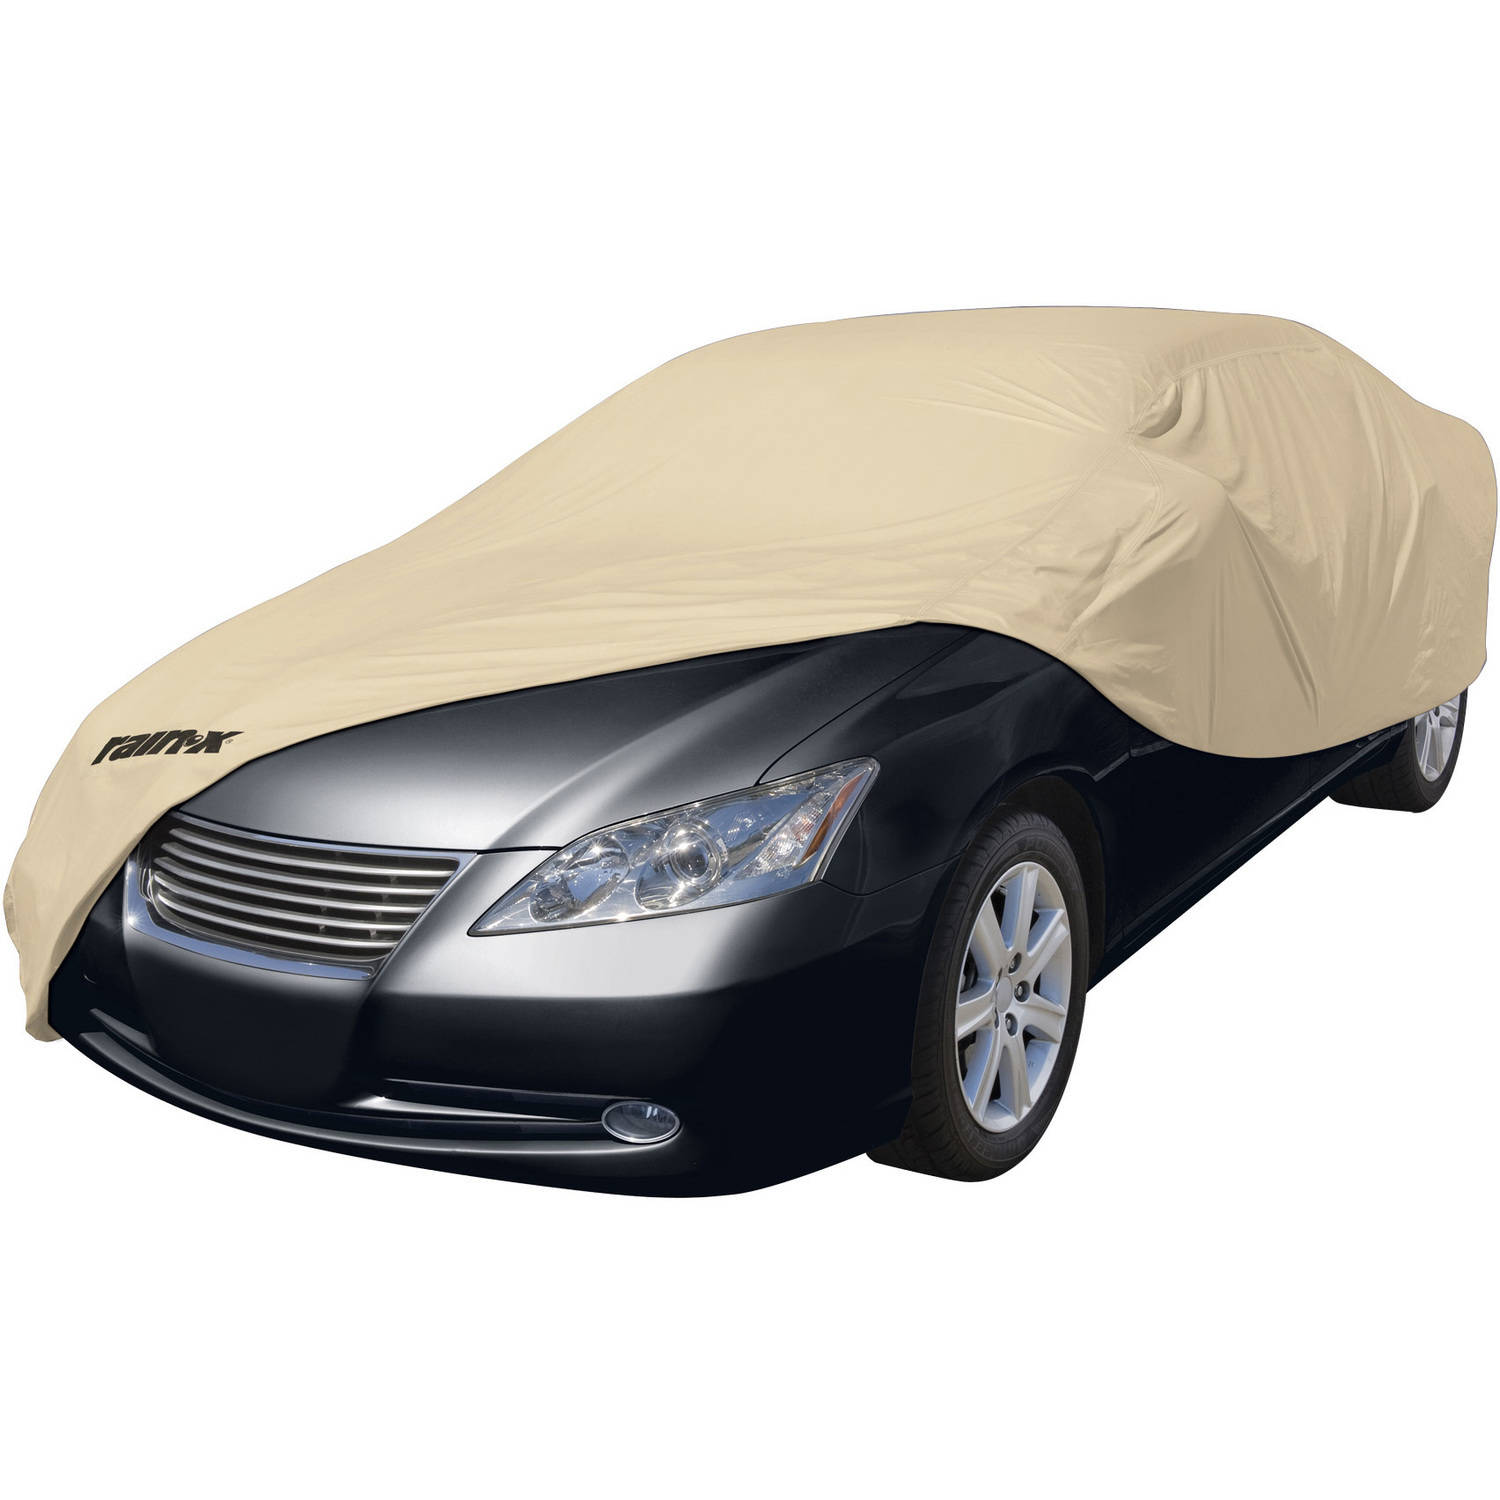 Universal Fit Car Cover, XXL